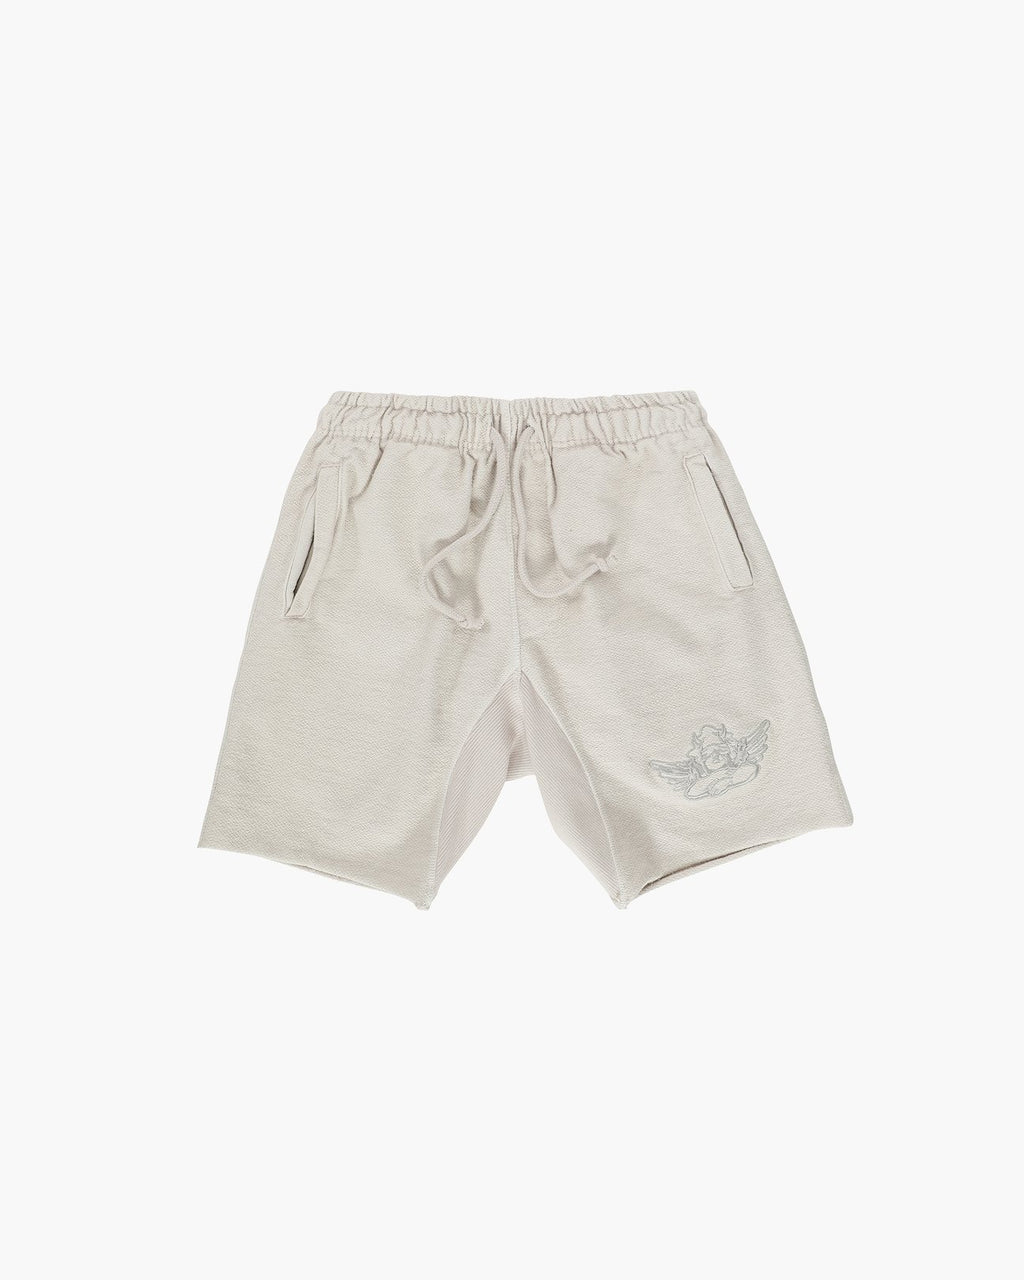 Boys Lie Inside Out Shorts